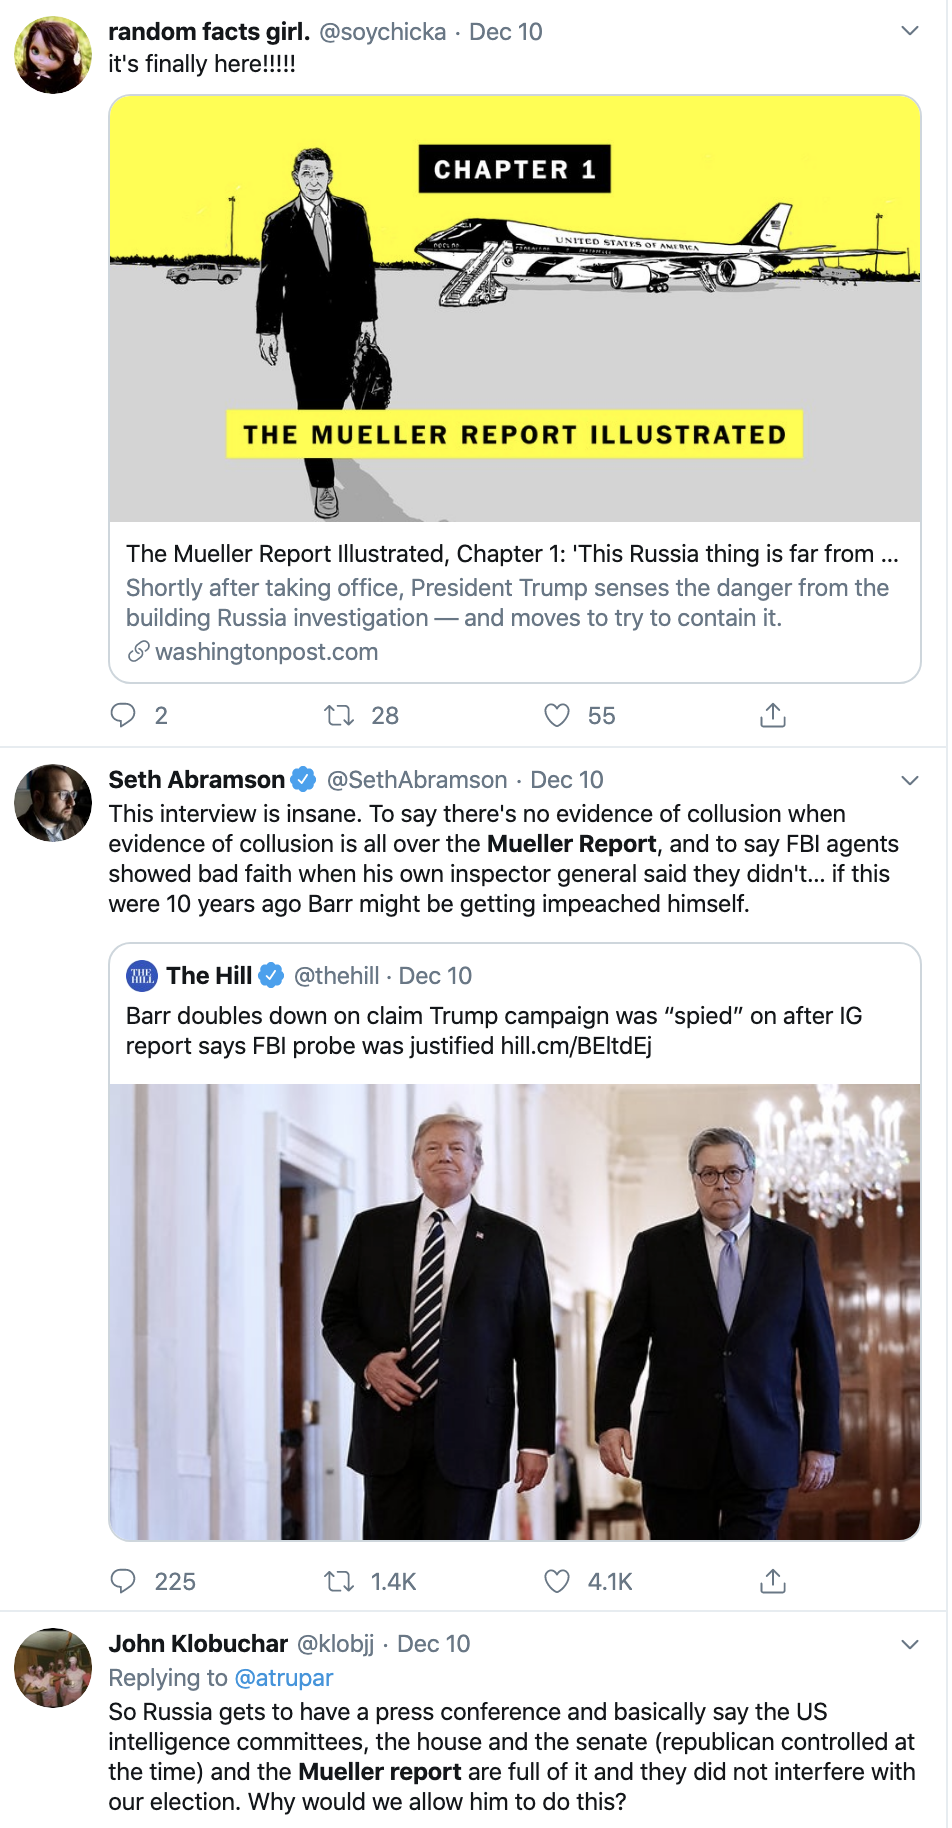 Screen-Shot-2019-12-16-at-3.18.56-PM Dems Request Mueller Documents To Prove Articles Of Impeachment Featured Impeachment Robert Mueller Russia Top Stories